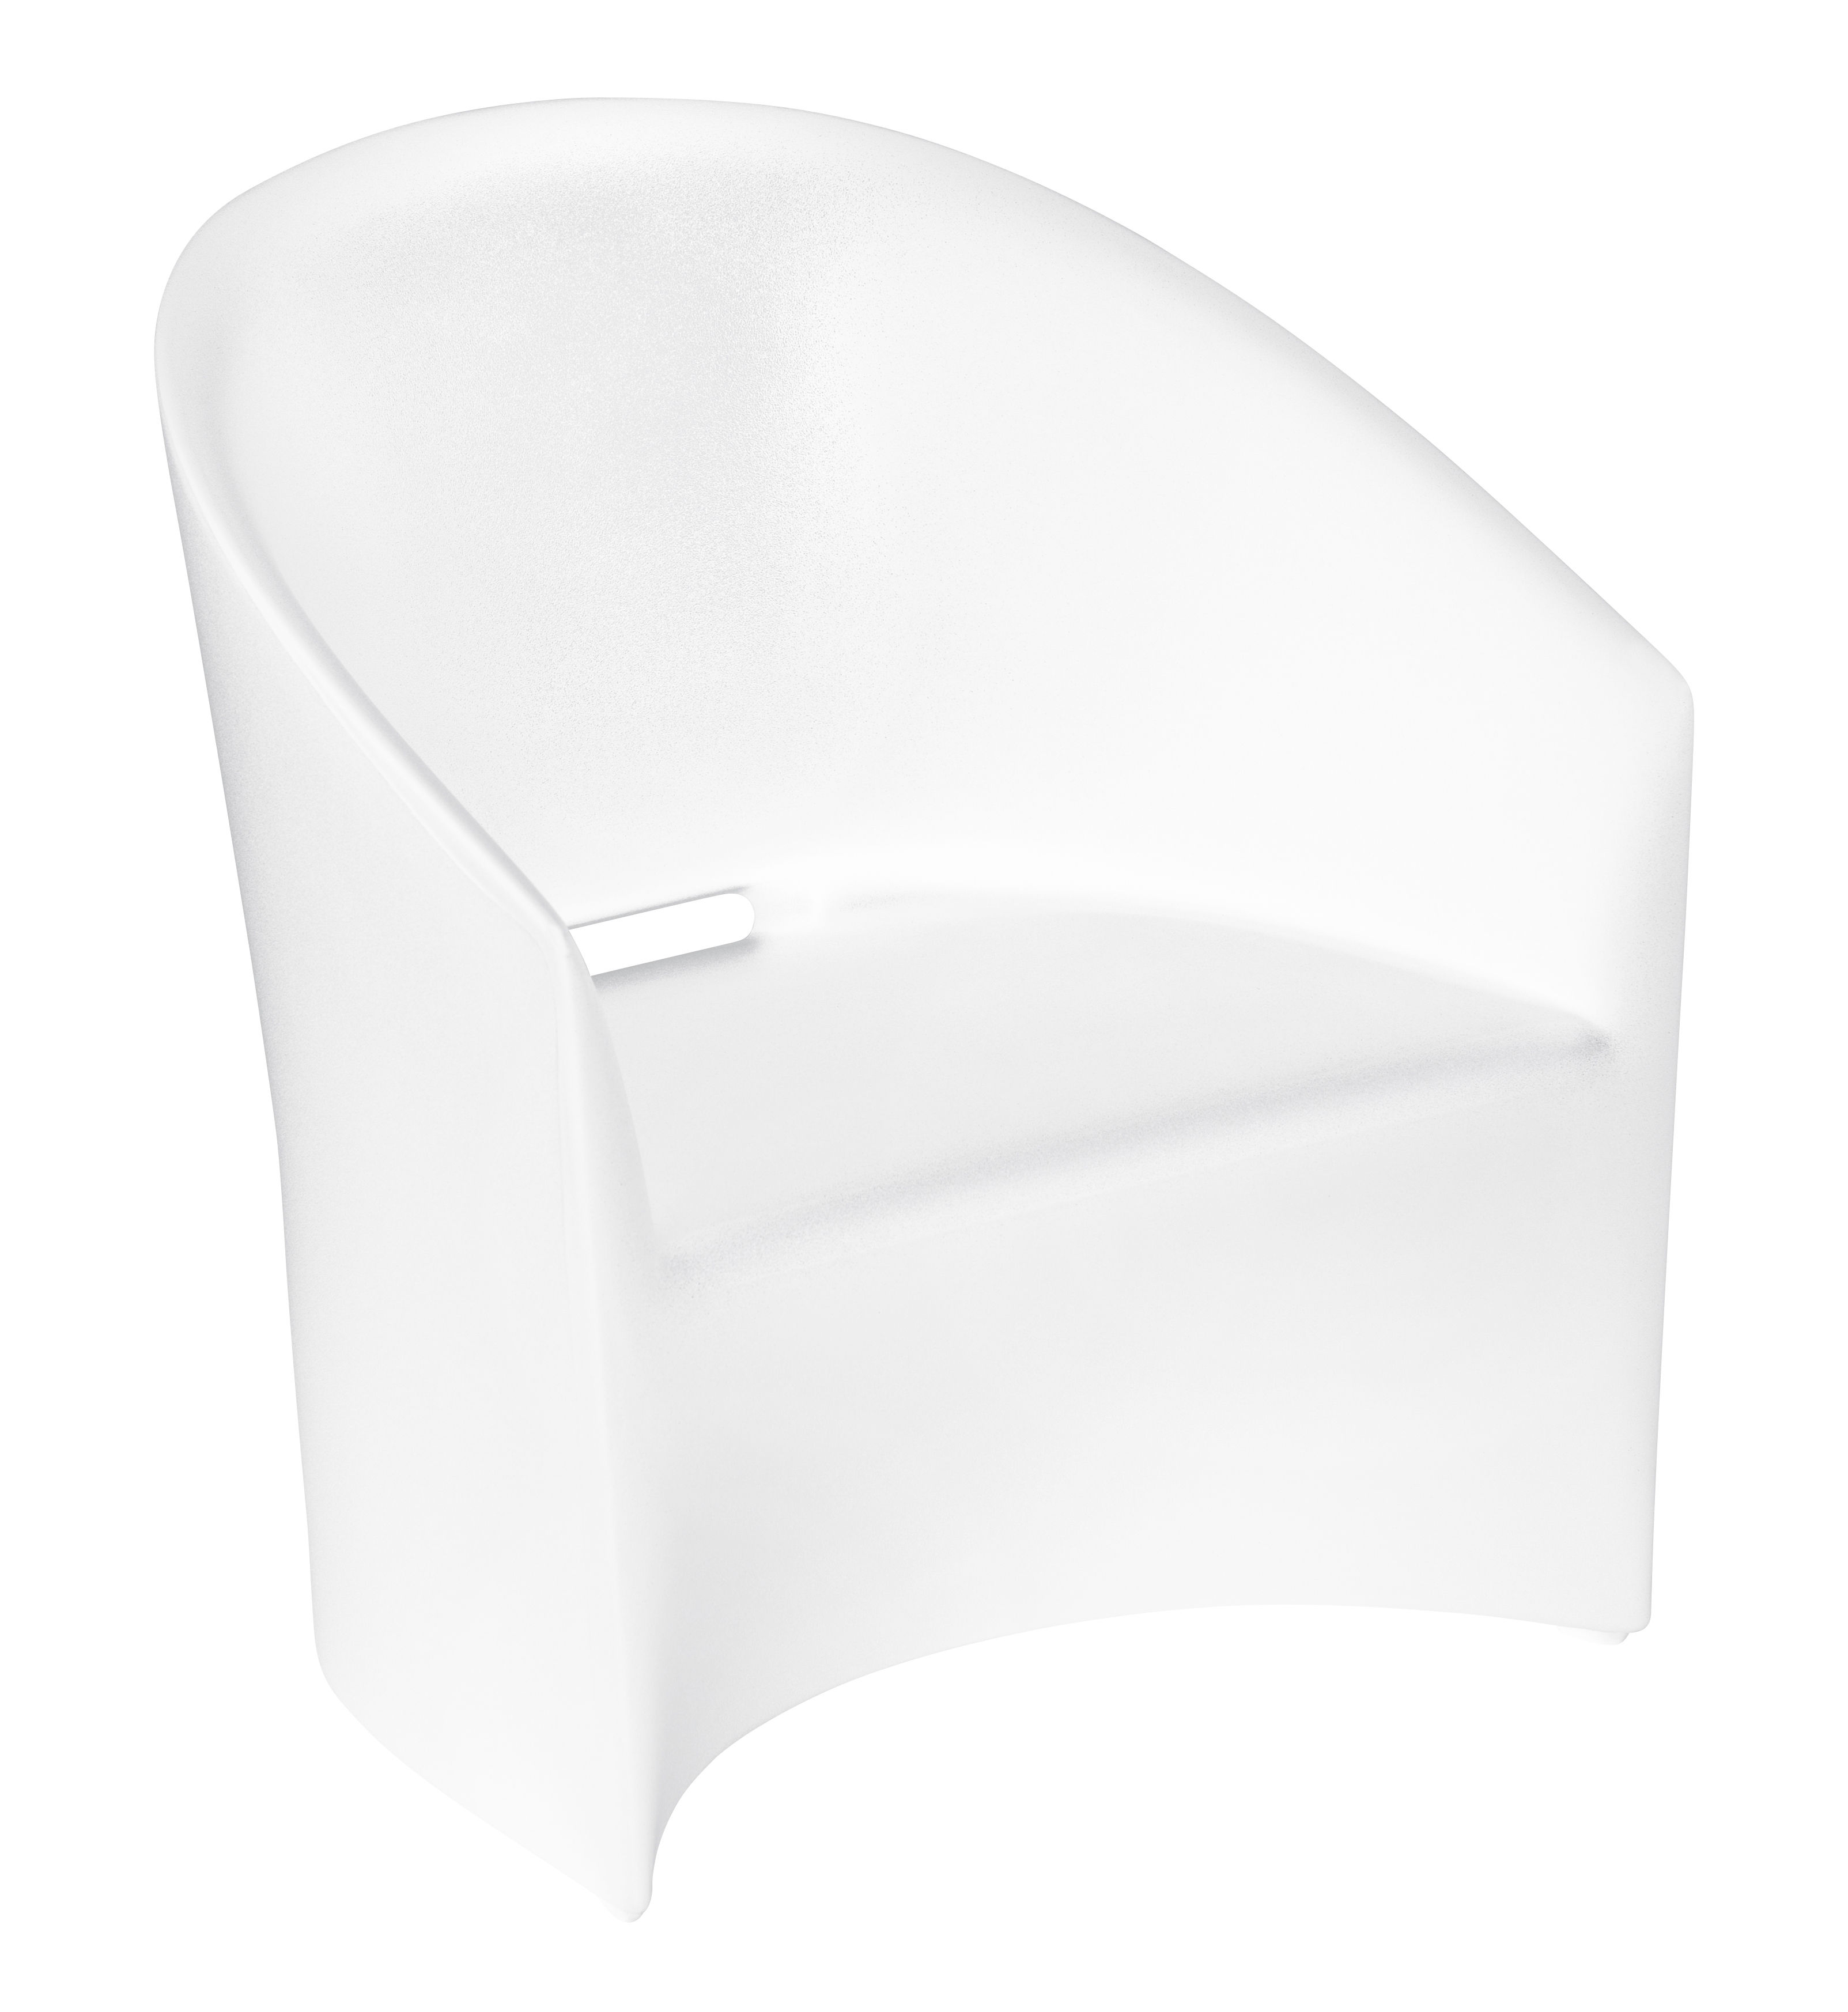 Furniture - Armchairs - PineBeach Armchair - Indoor / Outdoor by Serralunga - White - Polythene